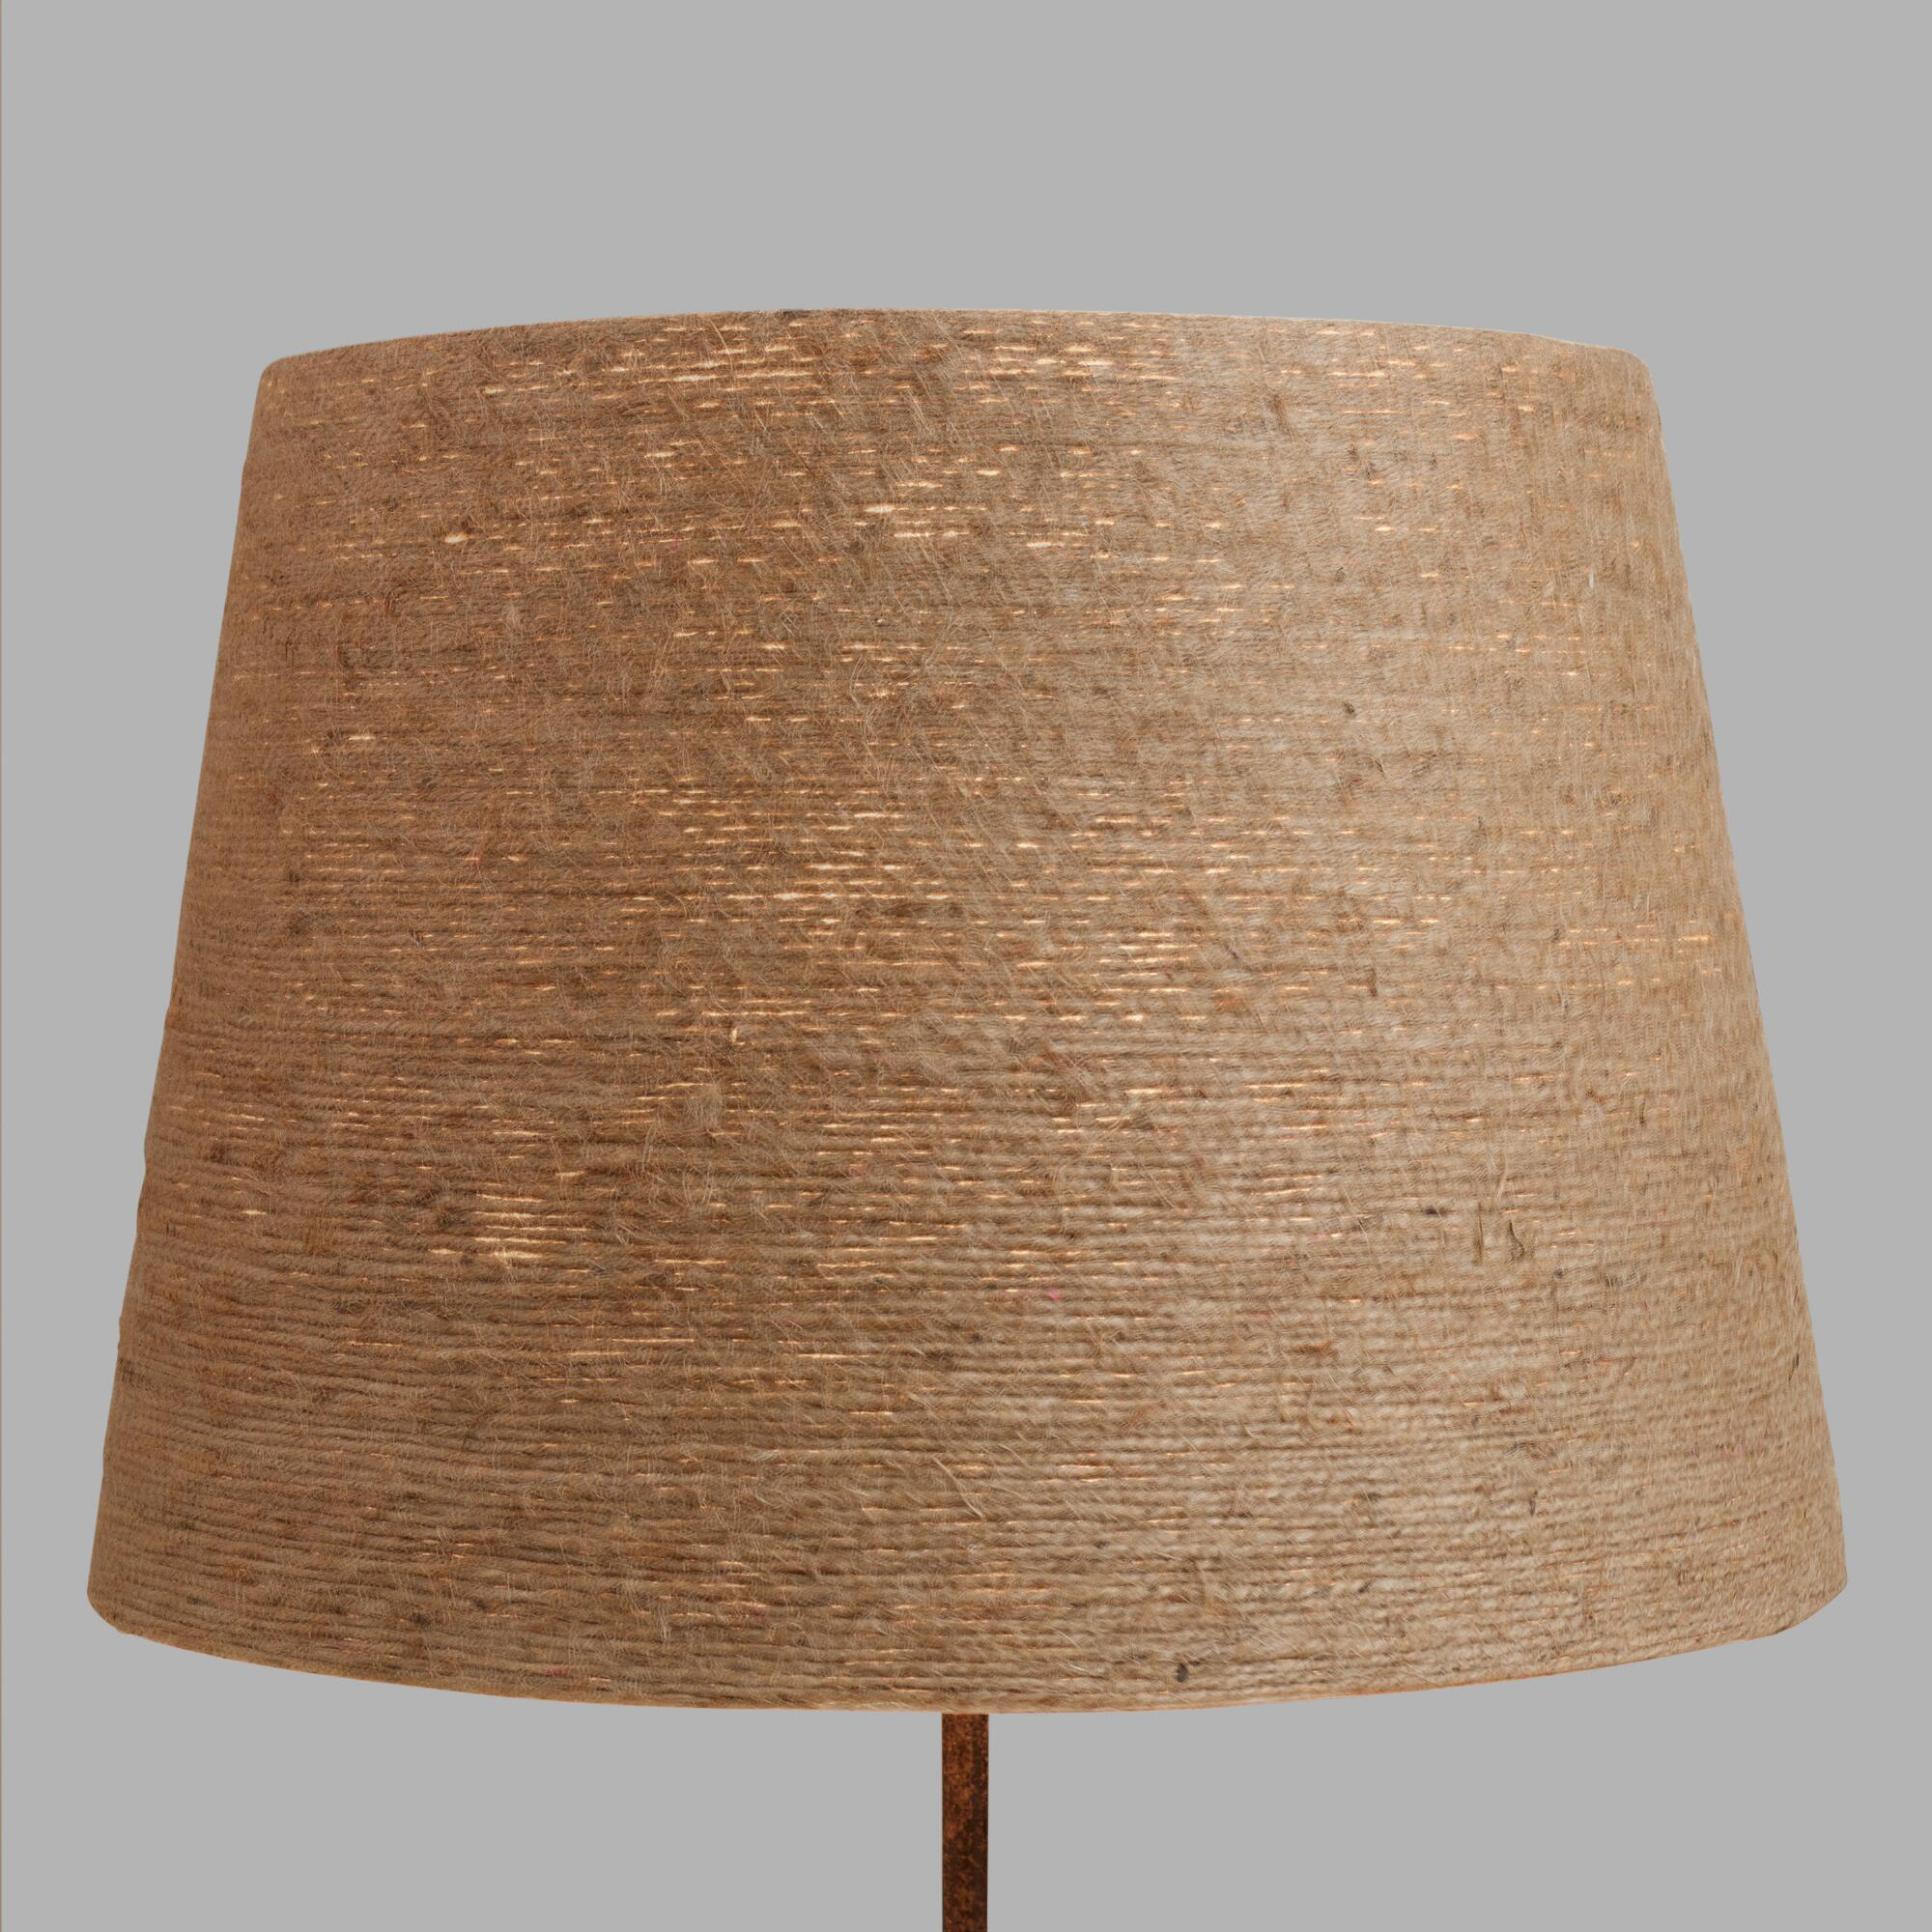 Twine-Wrapped Table Lamp Shade: Natural - Natural Fiber by World Market